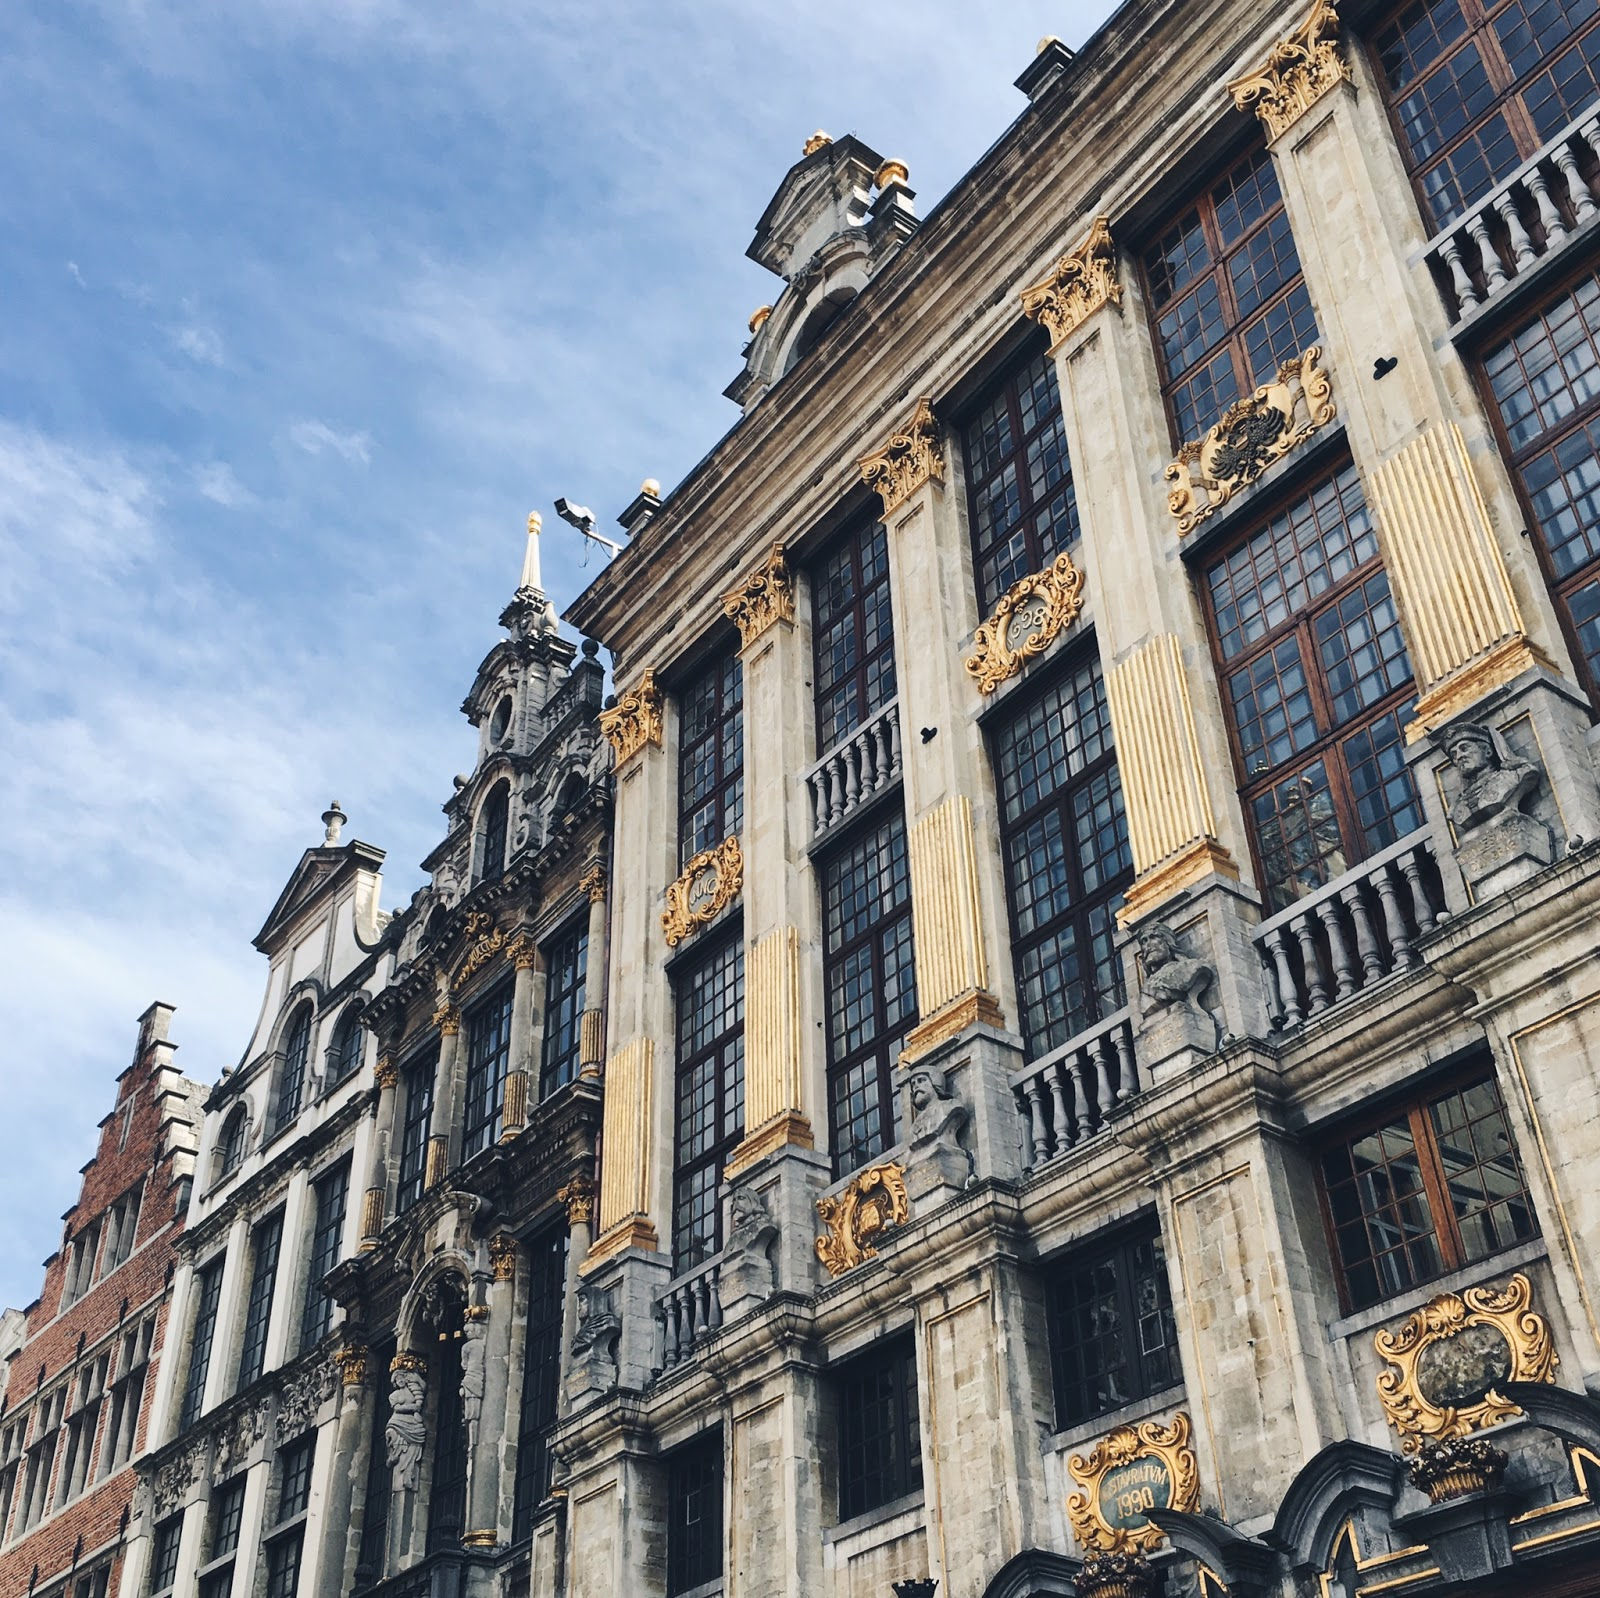 Brussels travel diary